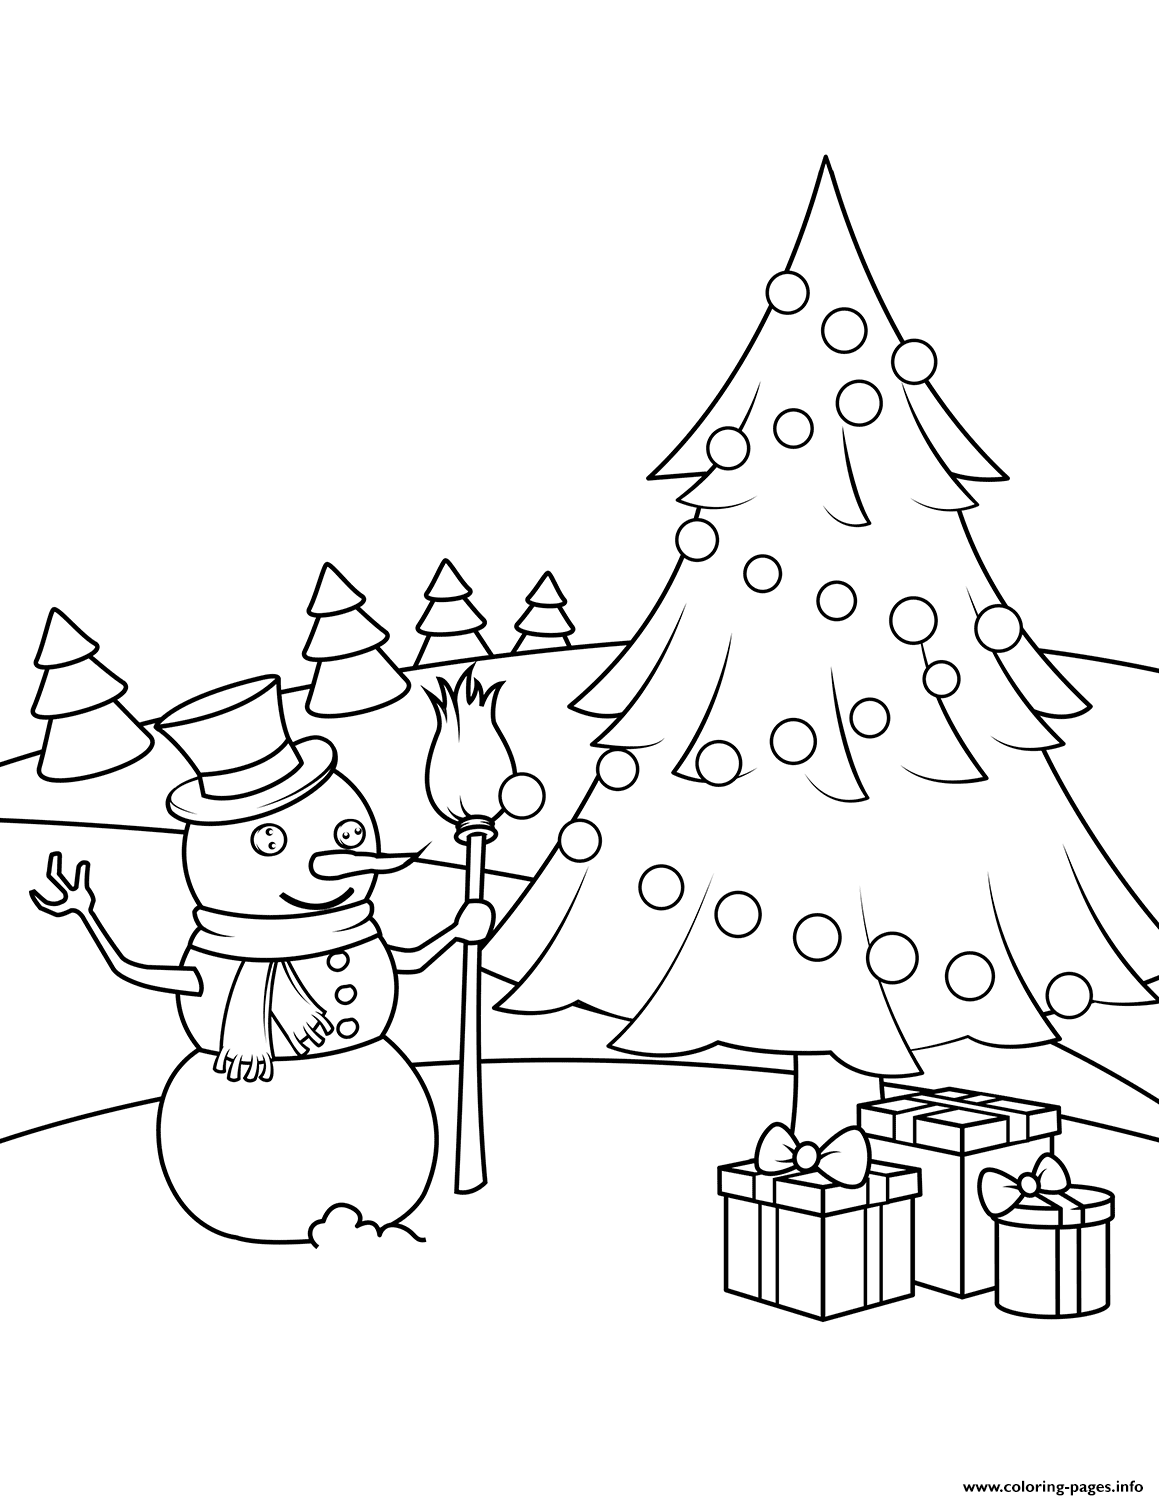 Snowman Christmas Tree And Presents Coloring Pages Printable